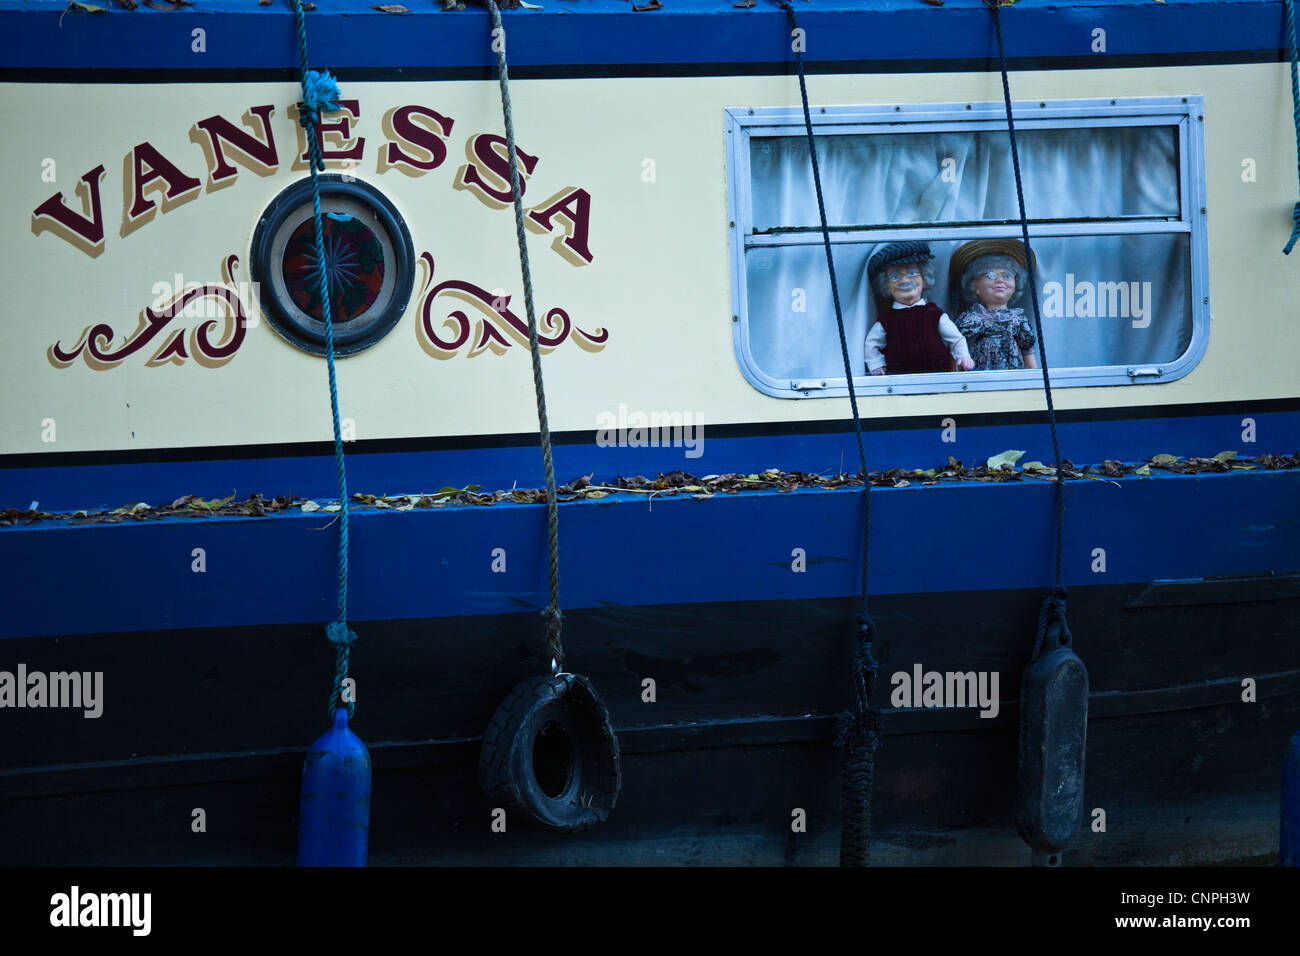 Two dolls stare out of a canal boat window on the Grand Union Canal near to Milton Keynes, UK. - Stock Image